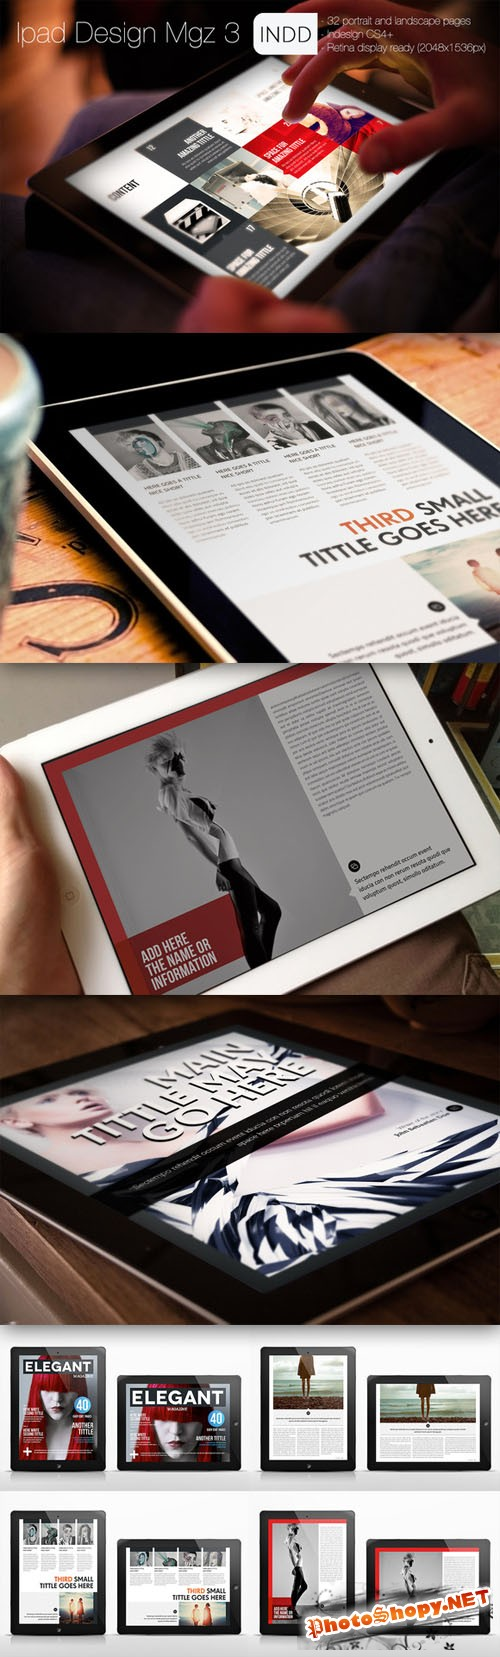 Ipad Design Magazine 3 - CM 105025